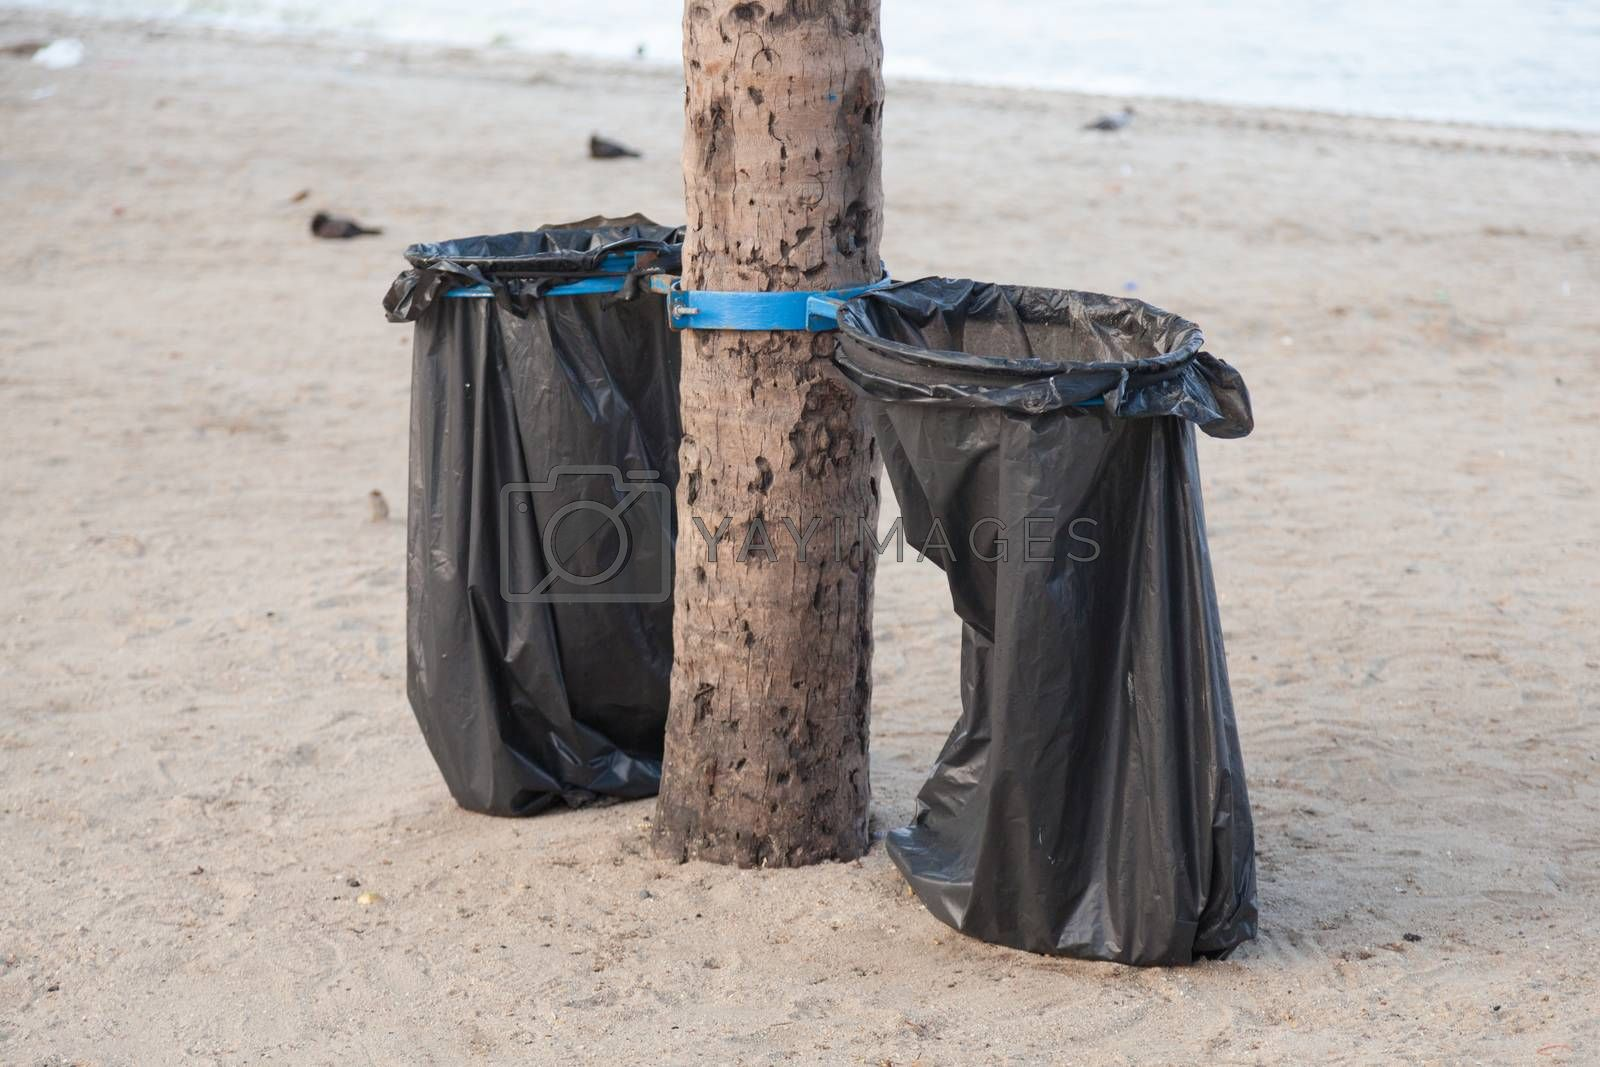 Black garbage bags. Plastic black trash on the beach under the coconut trees.